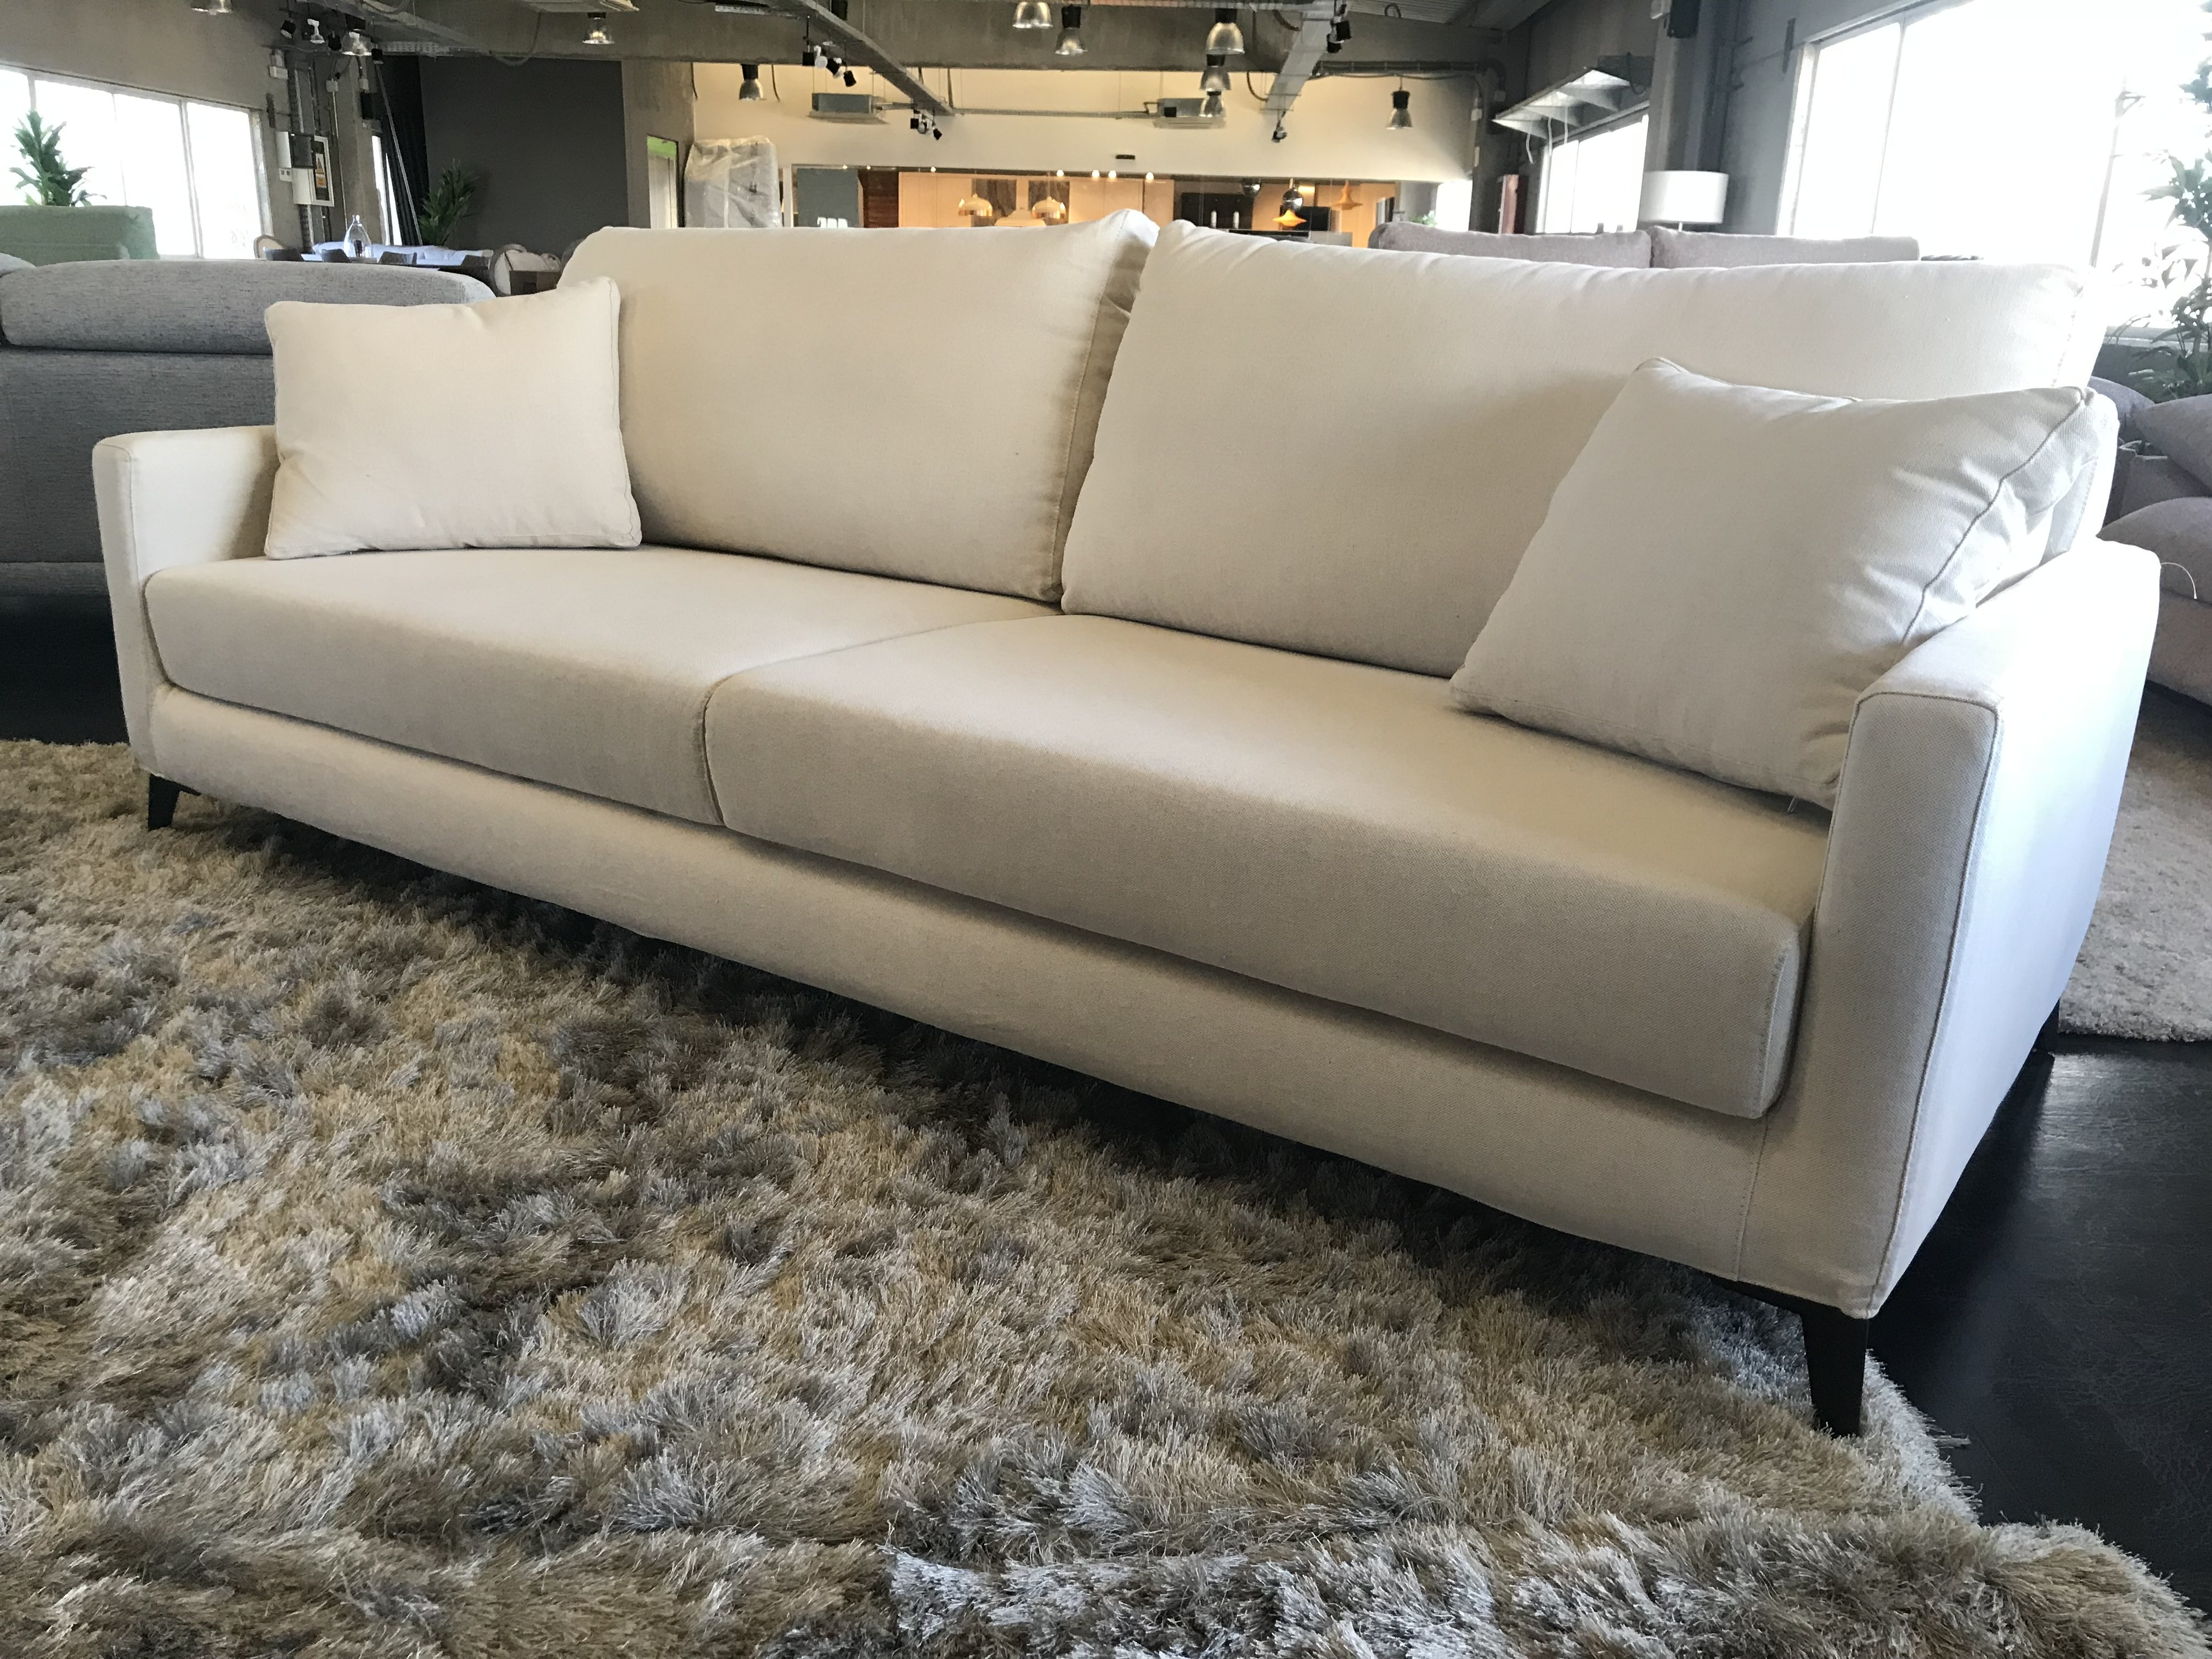 Ofertas sofas S1du Meglio Ofertas sofas Madrid Outlet the sofa Pany